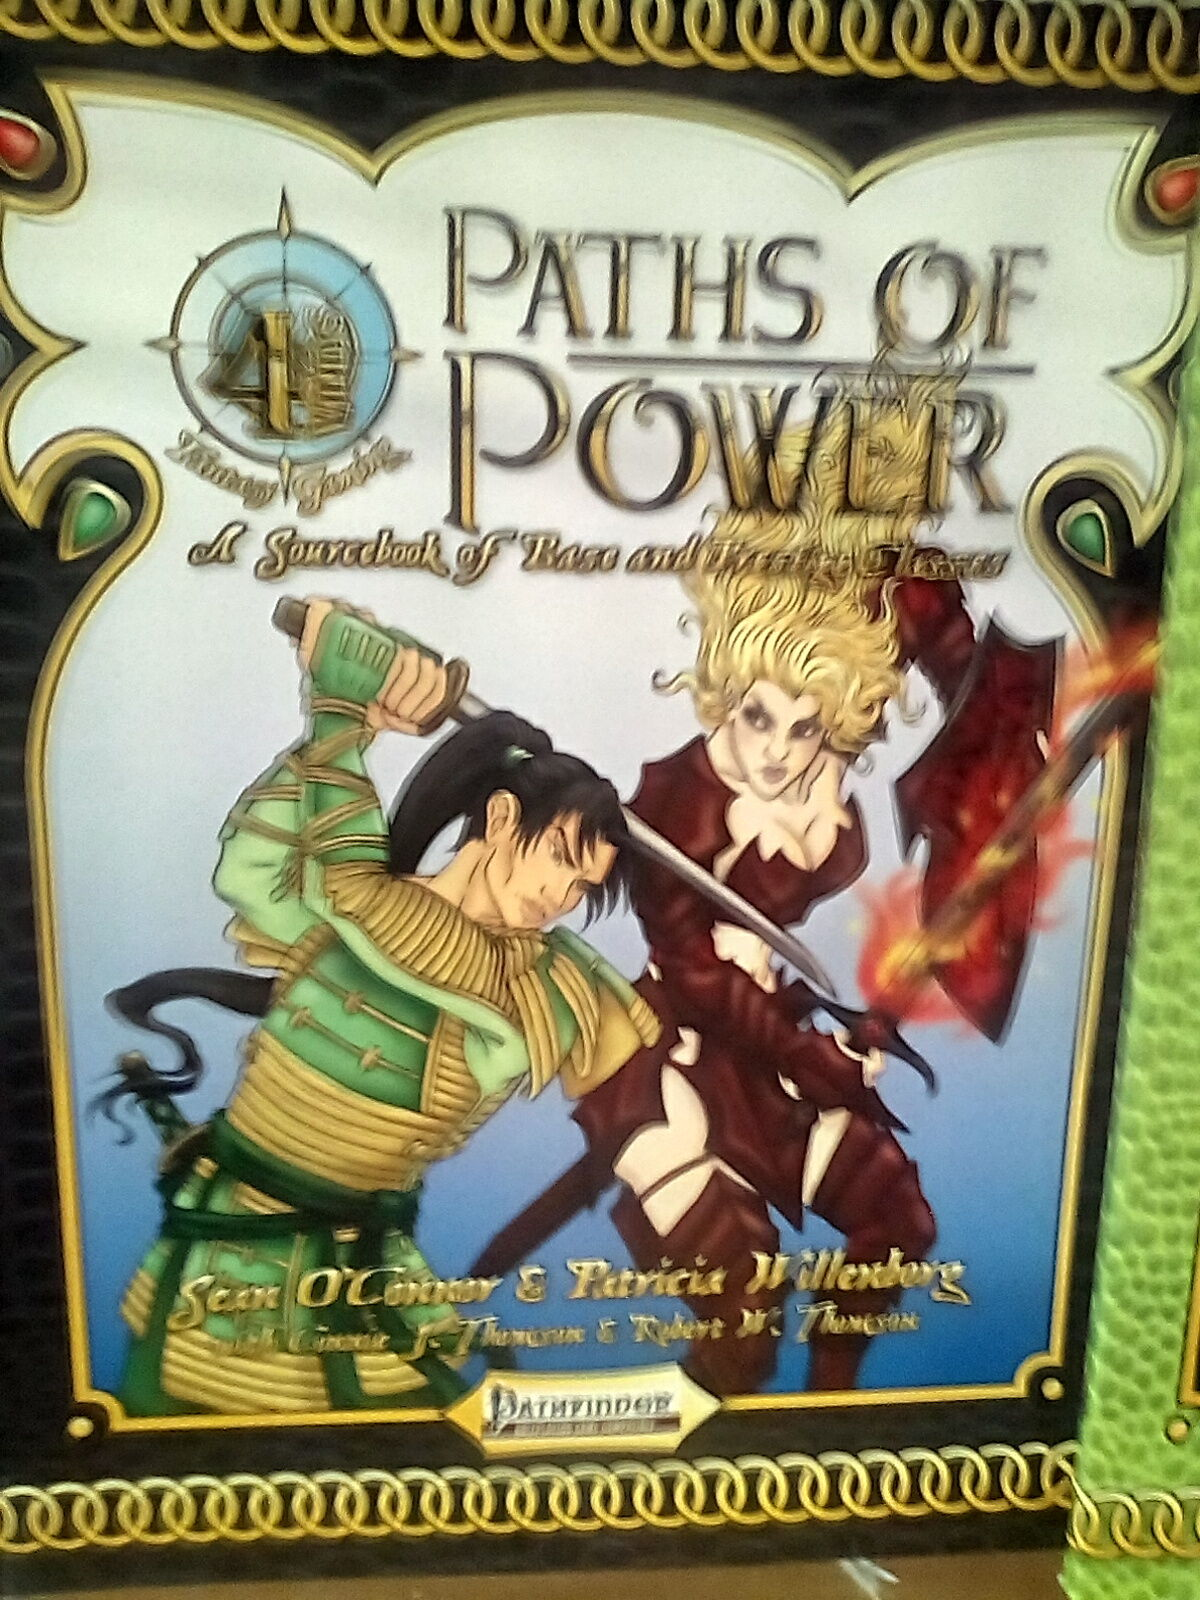 Pathfinder Rpg  Paths Of Power - Roleplaying Pathfinder Rpg Roleplaying - 4 Winds 08a1e3